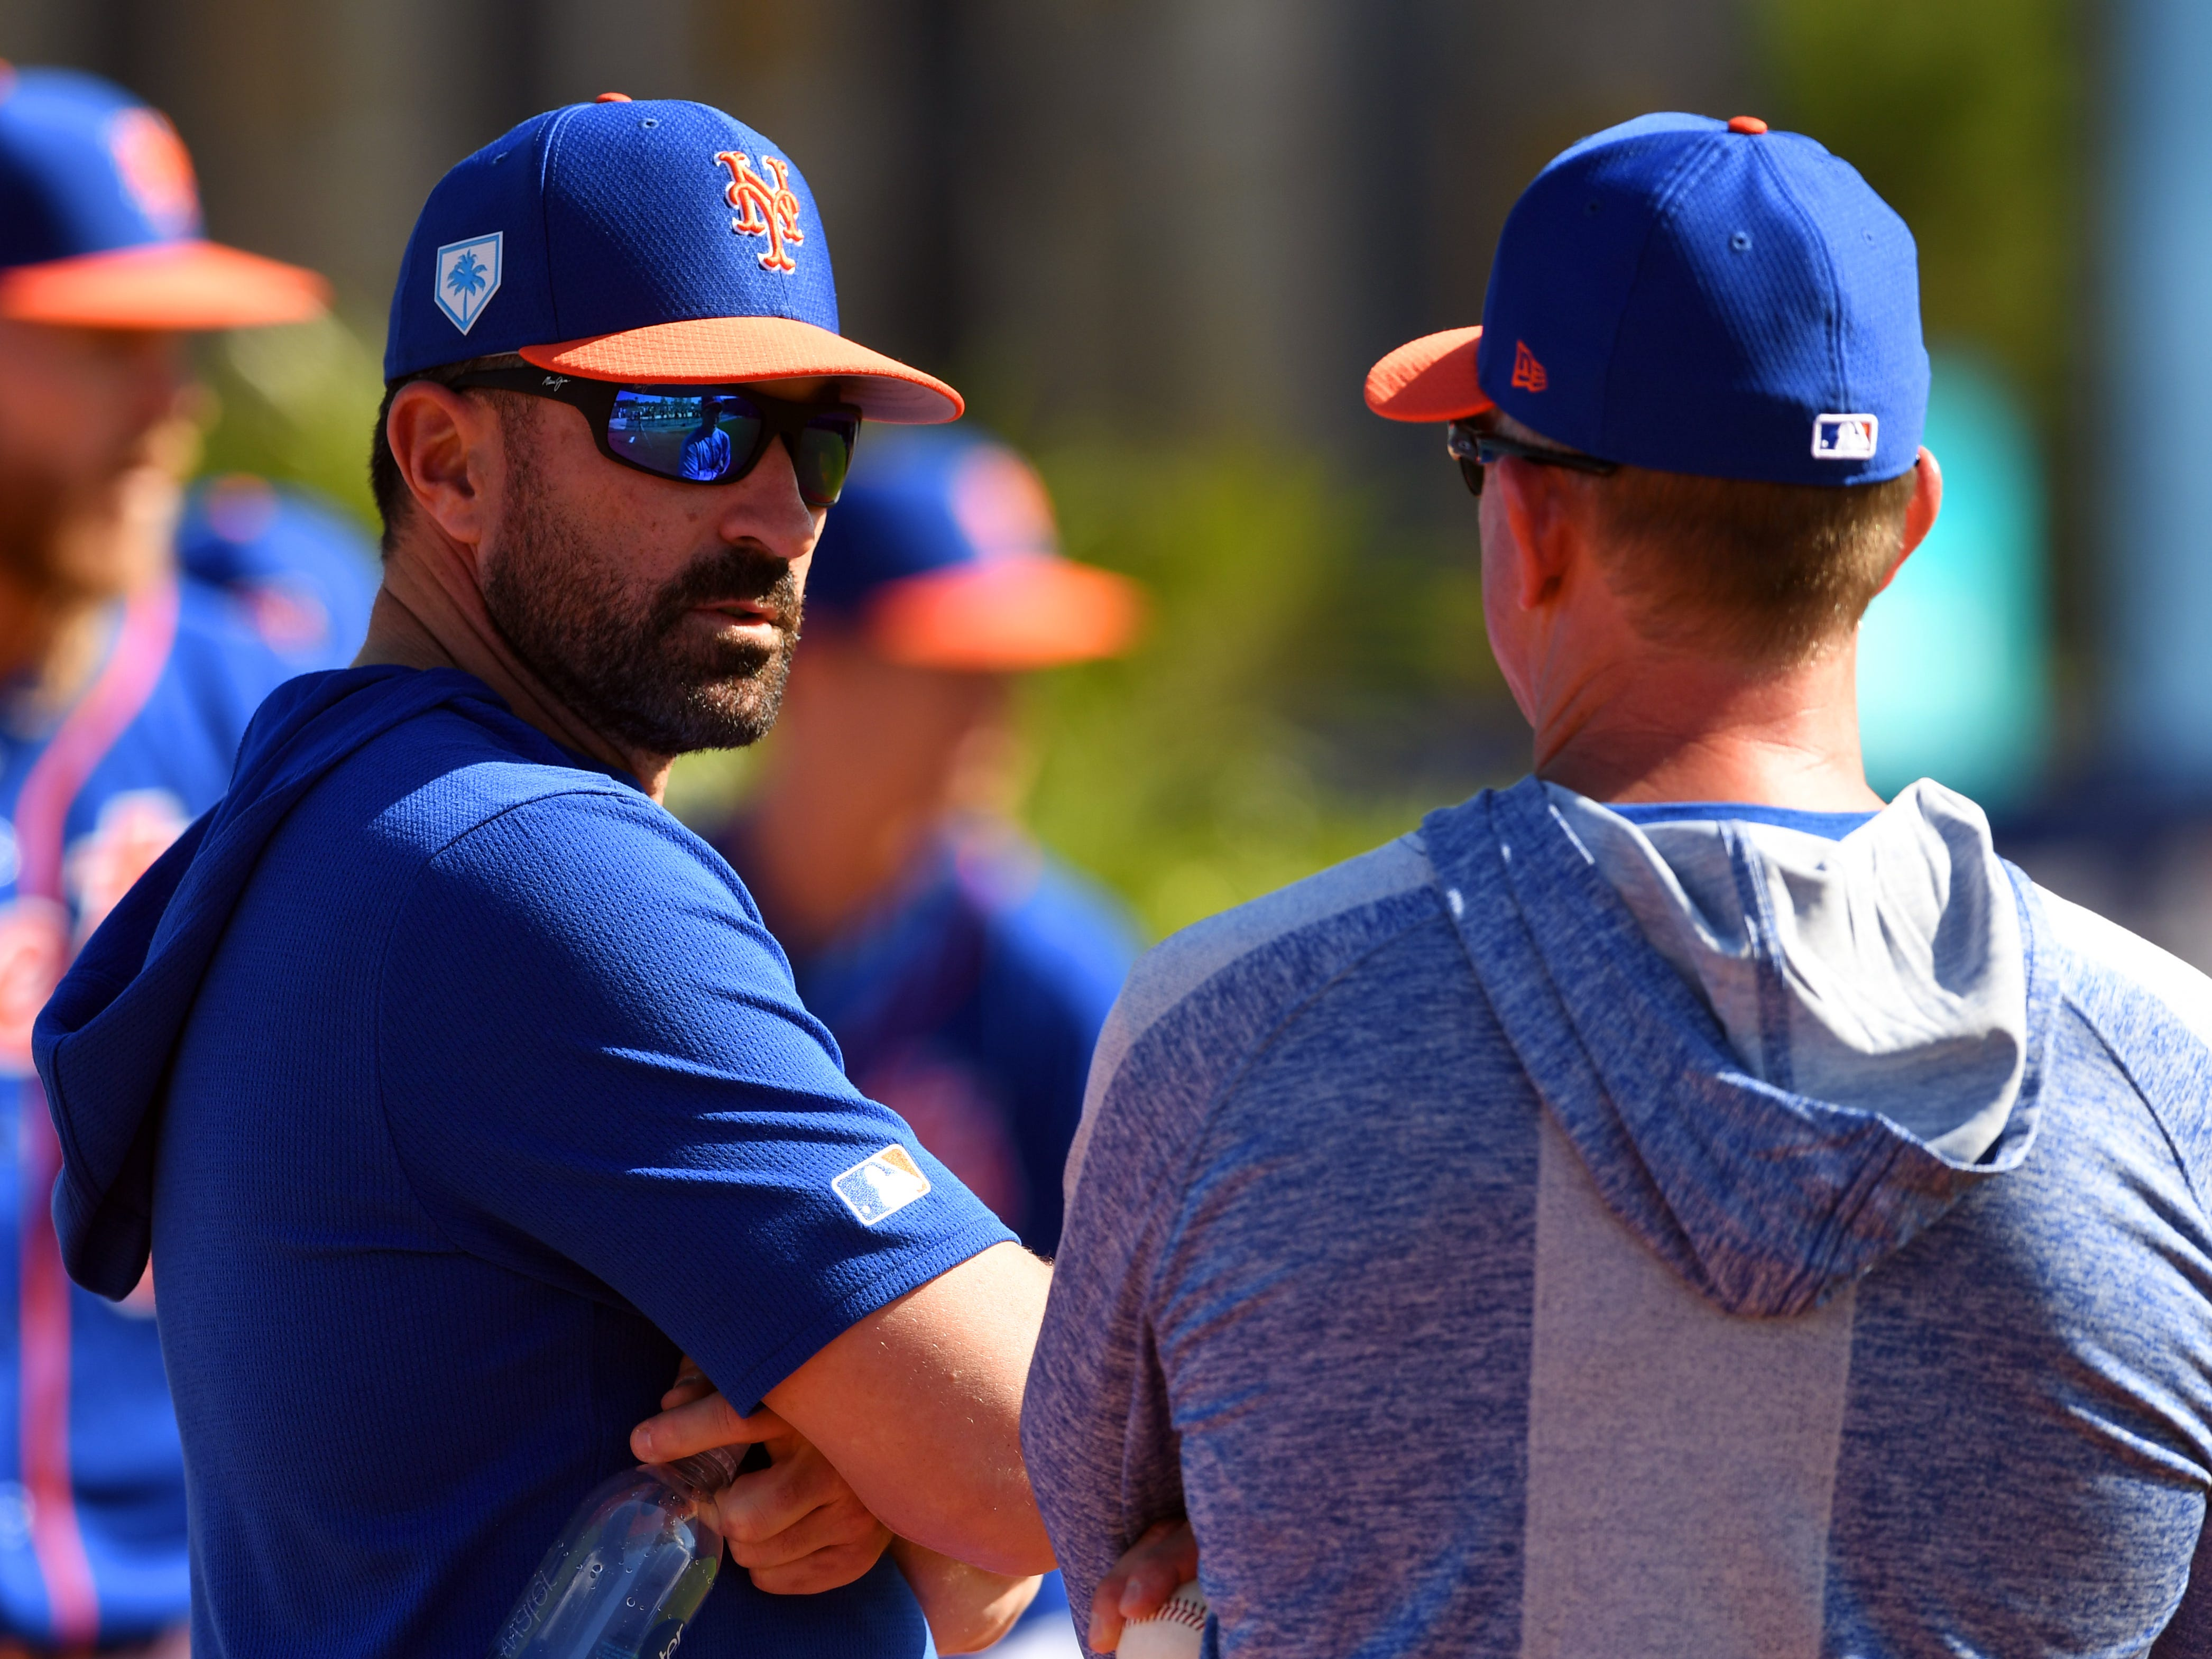 Spring training workouts continued for the New York Mets on Thursday, Feb. 14, 2019 as pitchers and catchers reported to First Data Field in Port St. Lucie. A full-squad workout is slated for Feb. 18 followed by the Mets' first spring training game against the Atlanta Braves on Feb. 23.